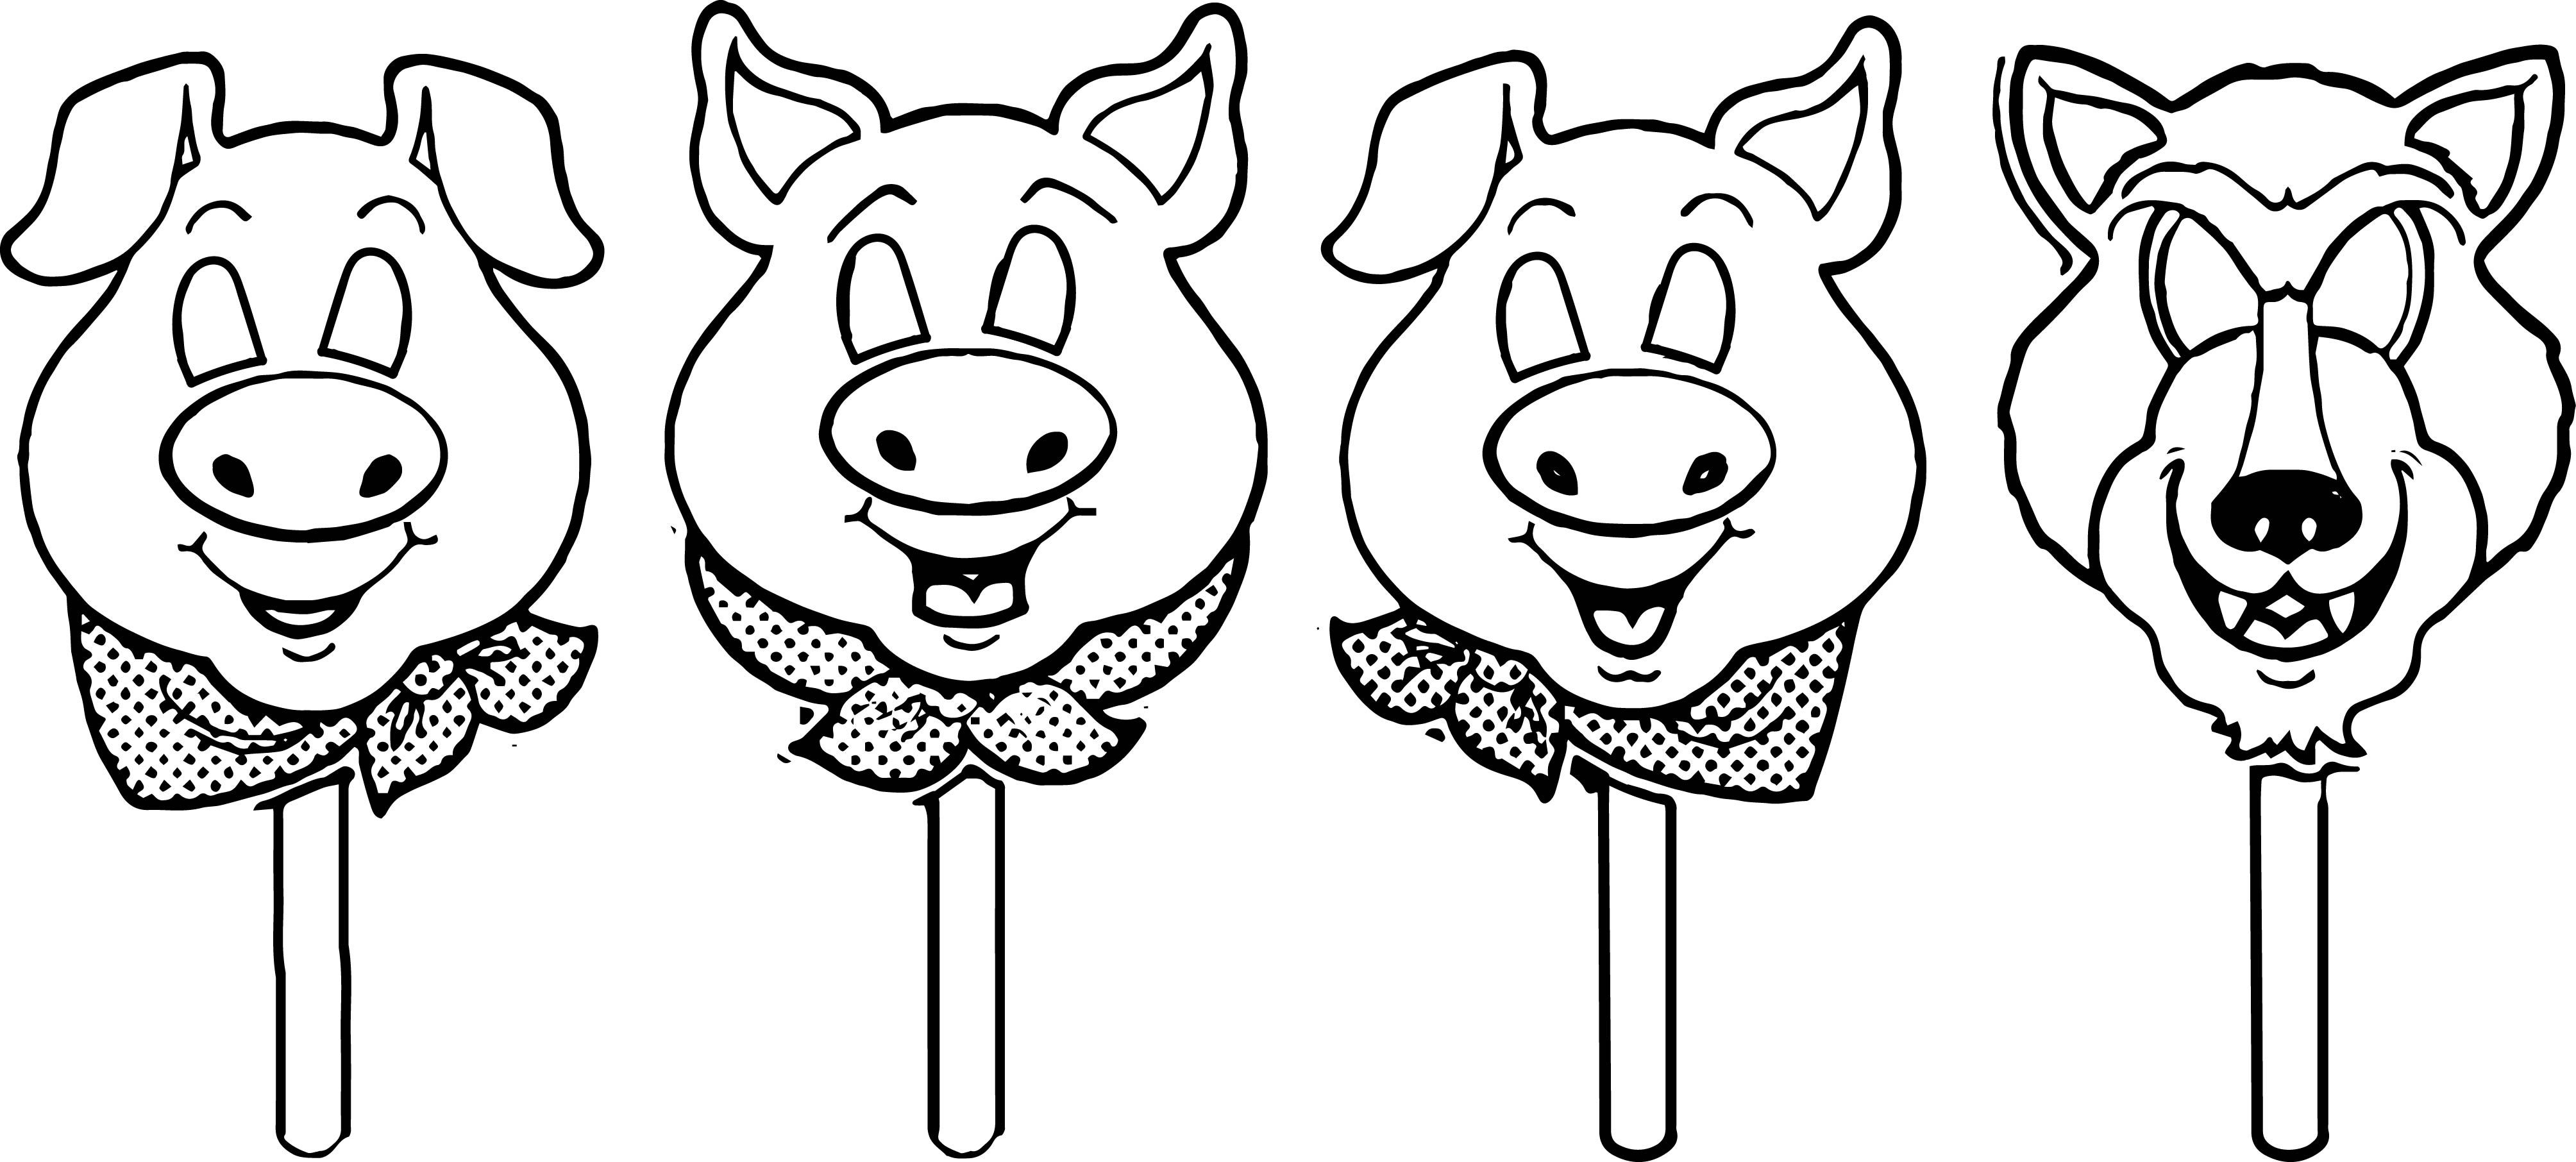 Awesome 3 Little Pigs Mask Template Coloring Page